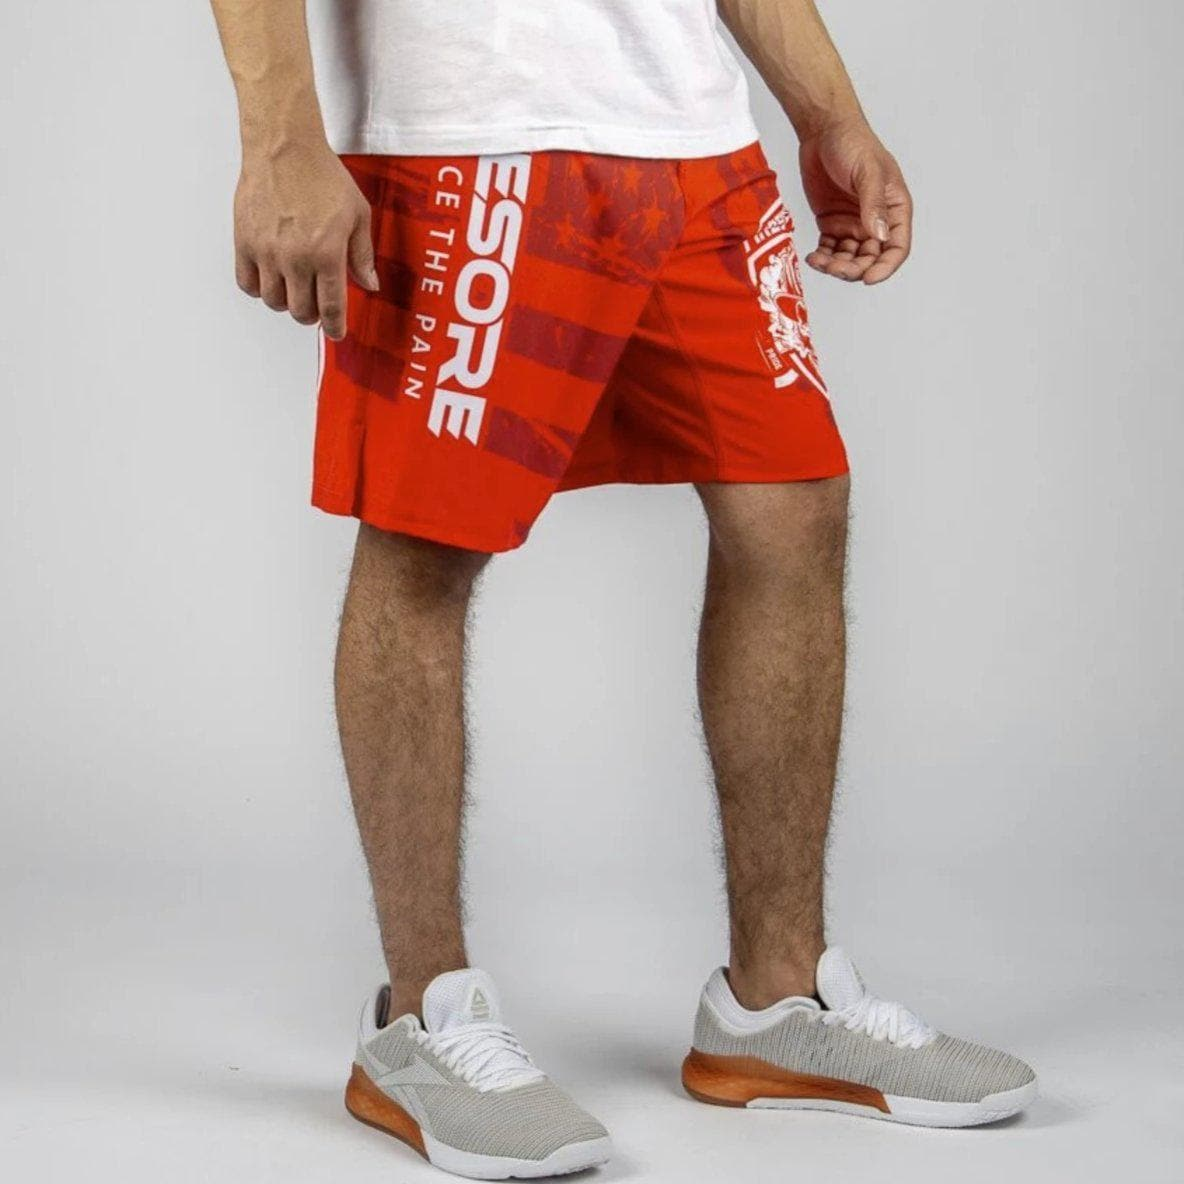 FIRE FIGHTER 1st Responder WOD Shorts-Mens Apparel,Mens Shorts-Livesore.net